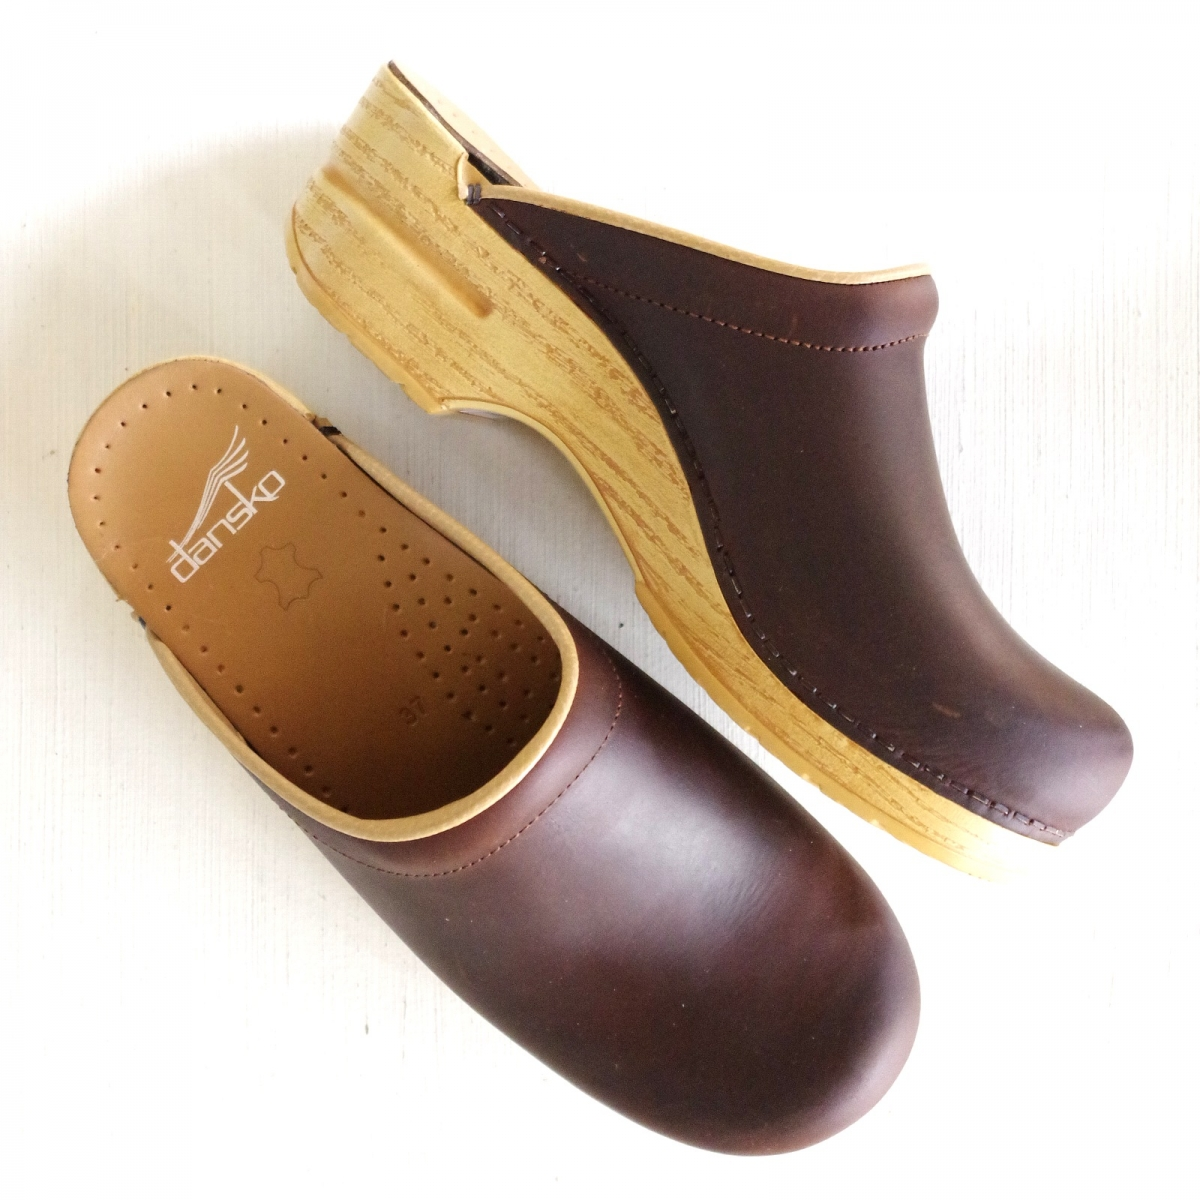 ダンスコ ソンヤ Dansko Sonja Antique Brown / Natural Sole